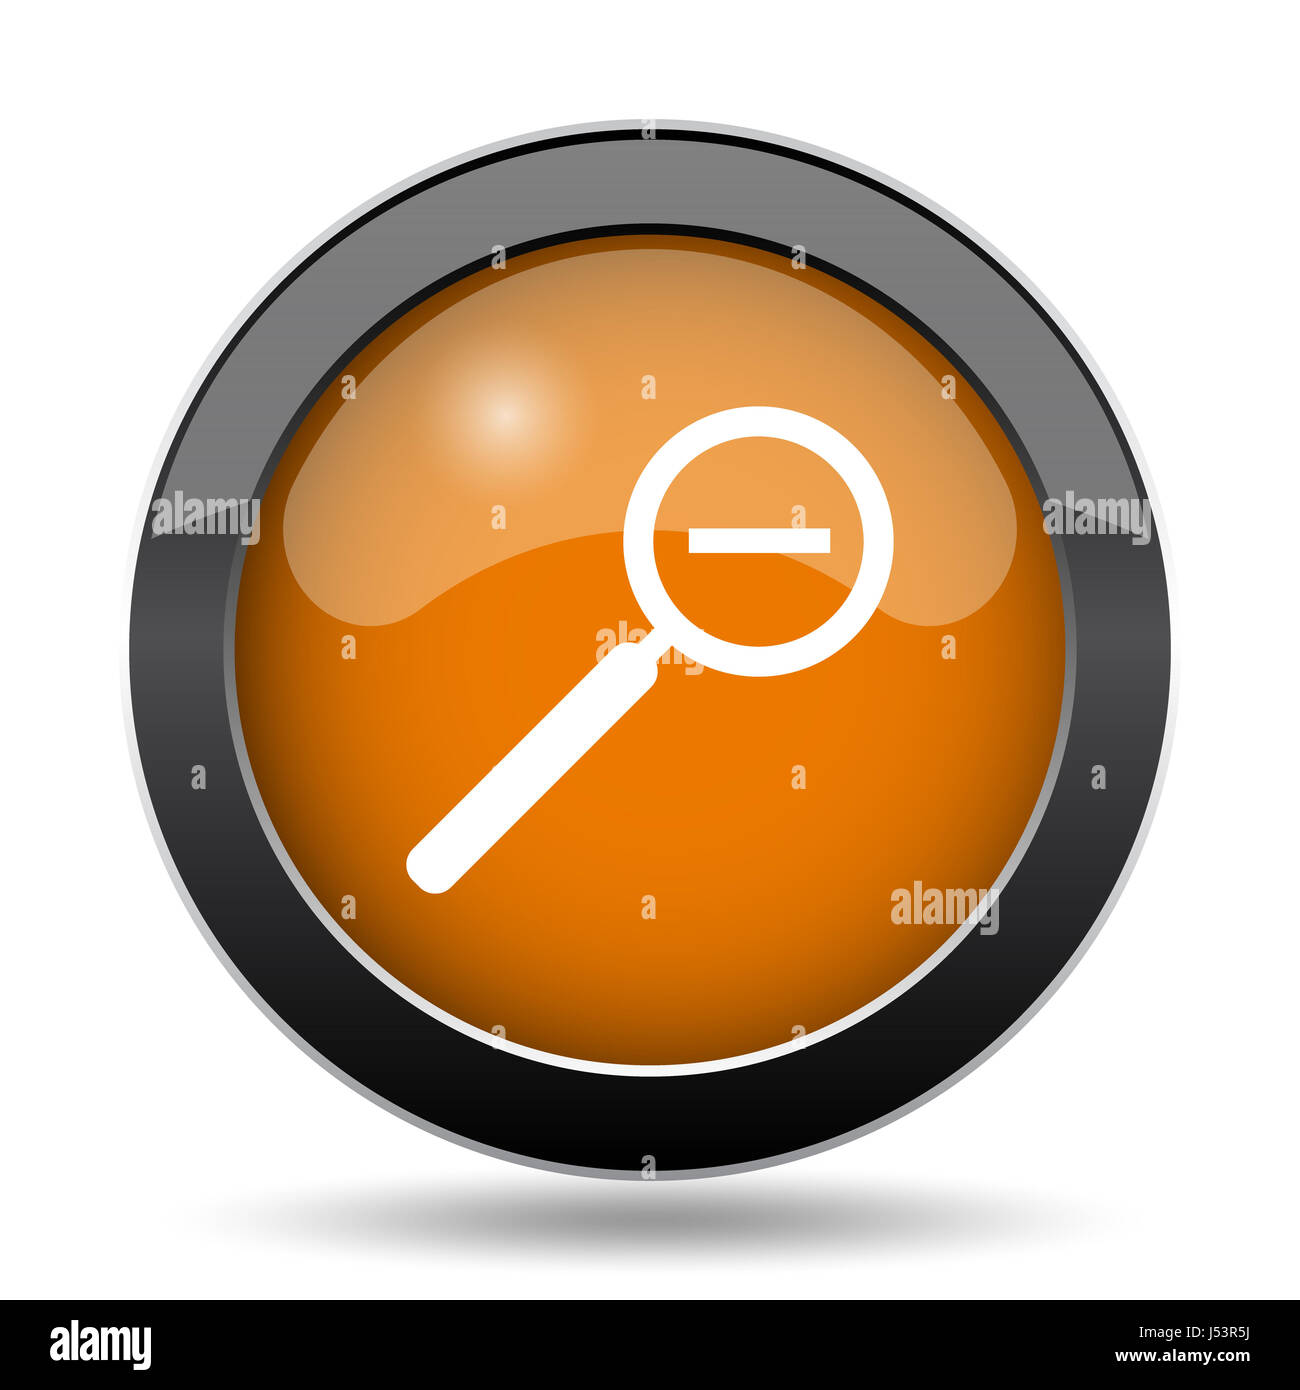 Background image zoom out - Stock Photo Zoom Out Icon Zoom Out Website Button On White Background